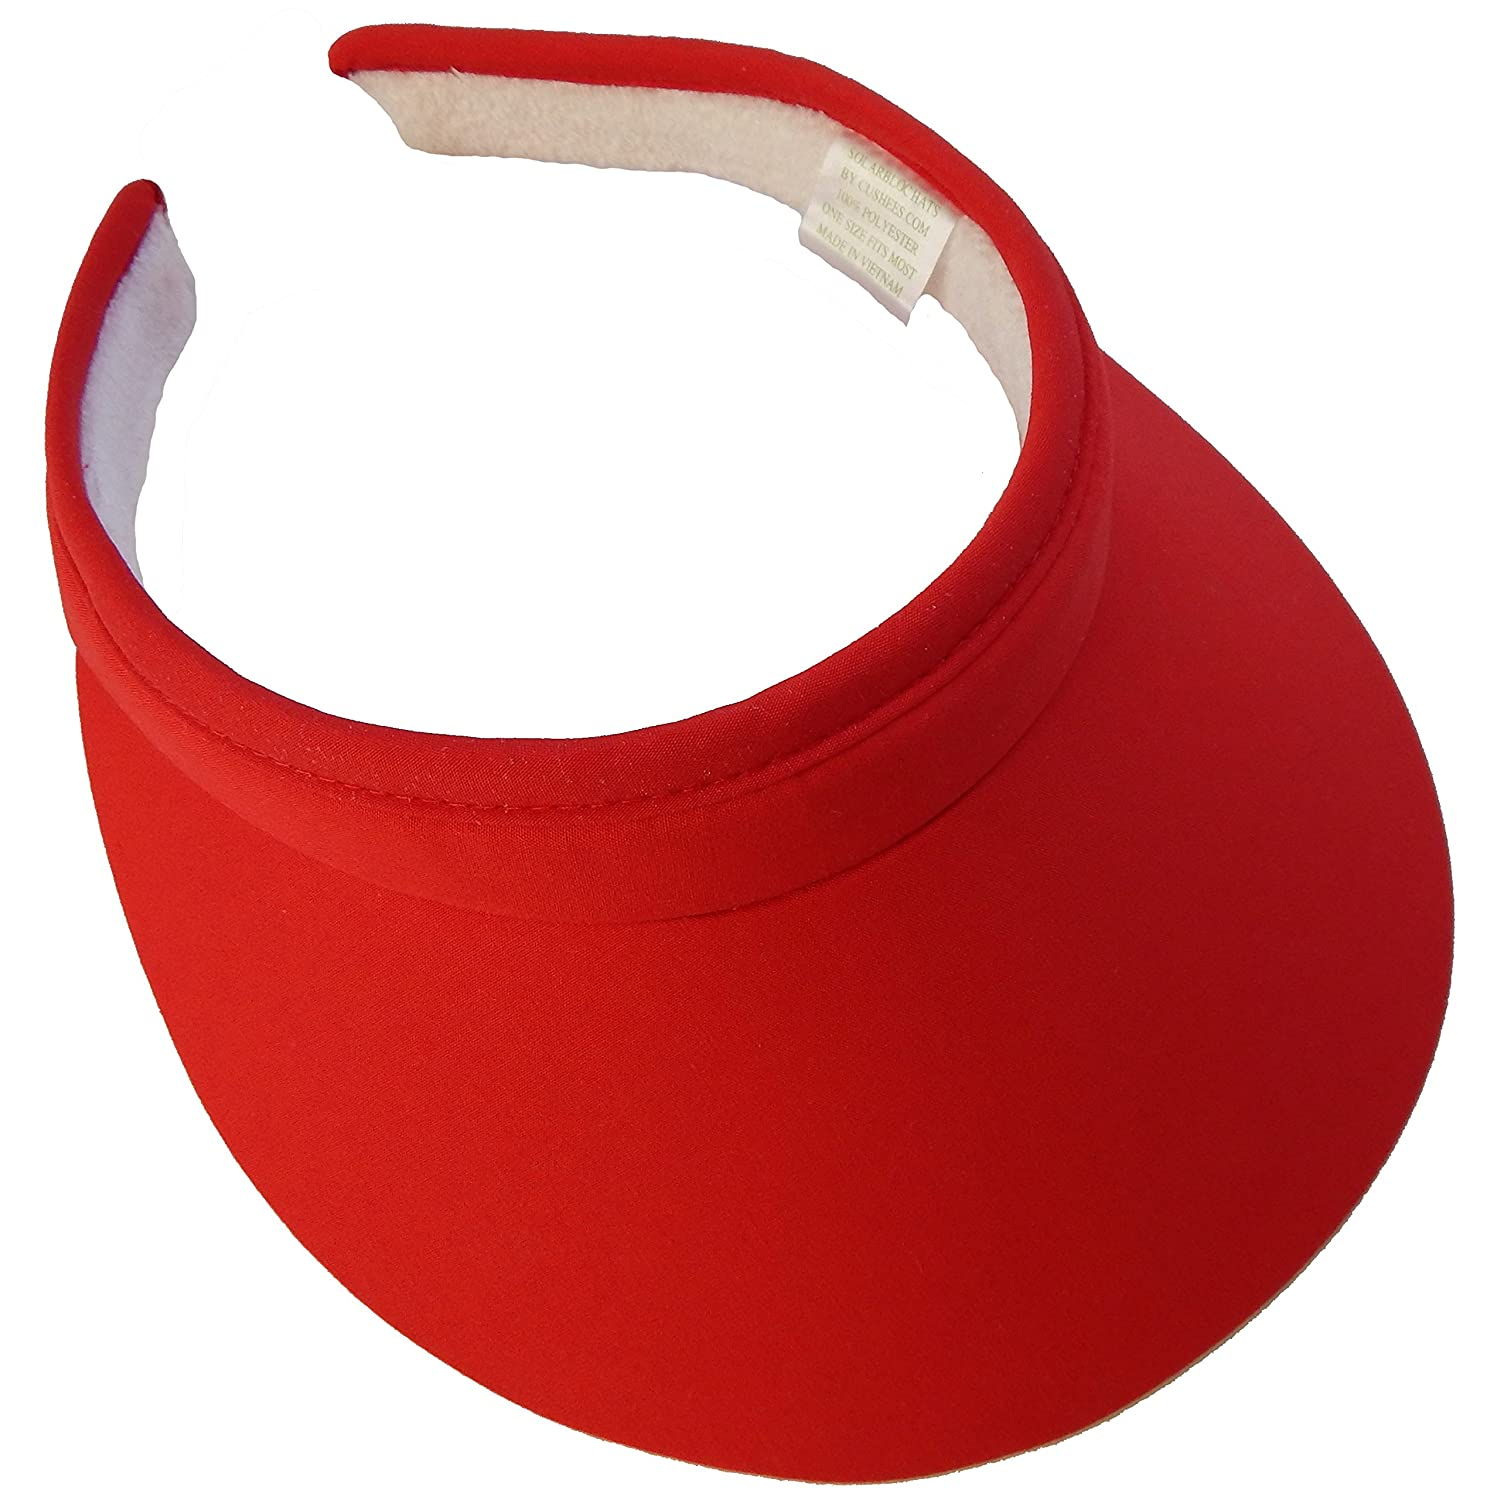 be6171b8727fb6 Cushees Cloth Covered Clip-On Visor [233] Inc. - blog.juhll.com